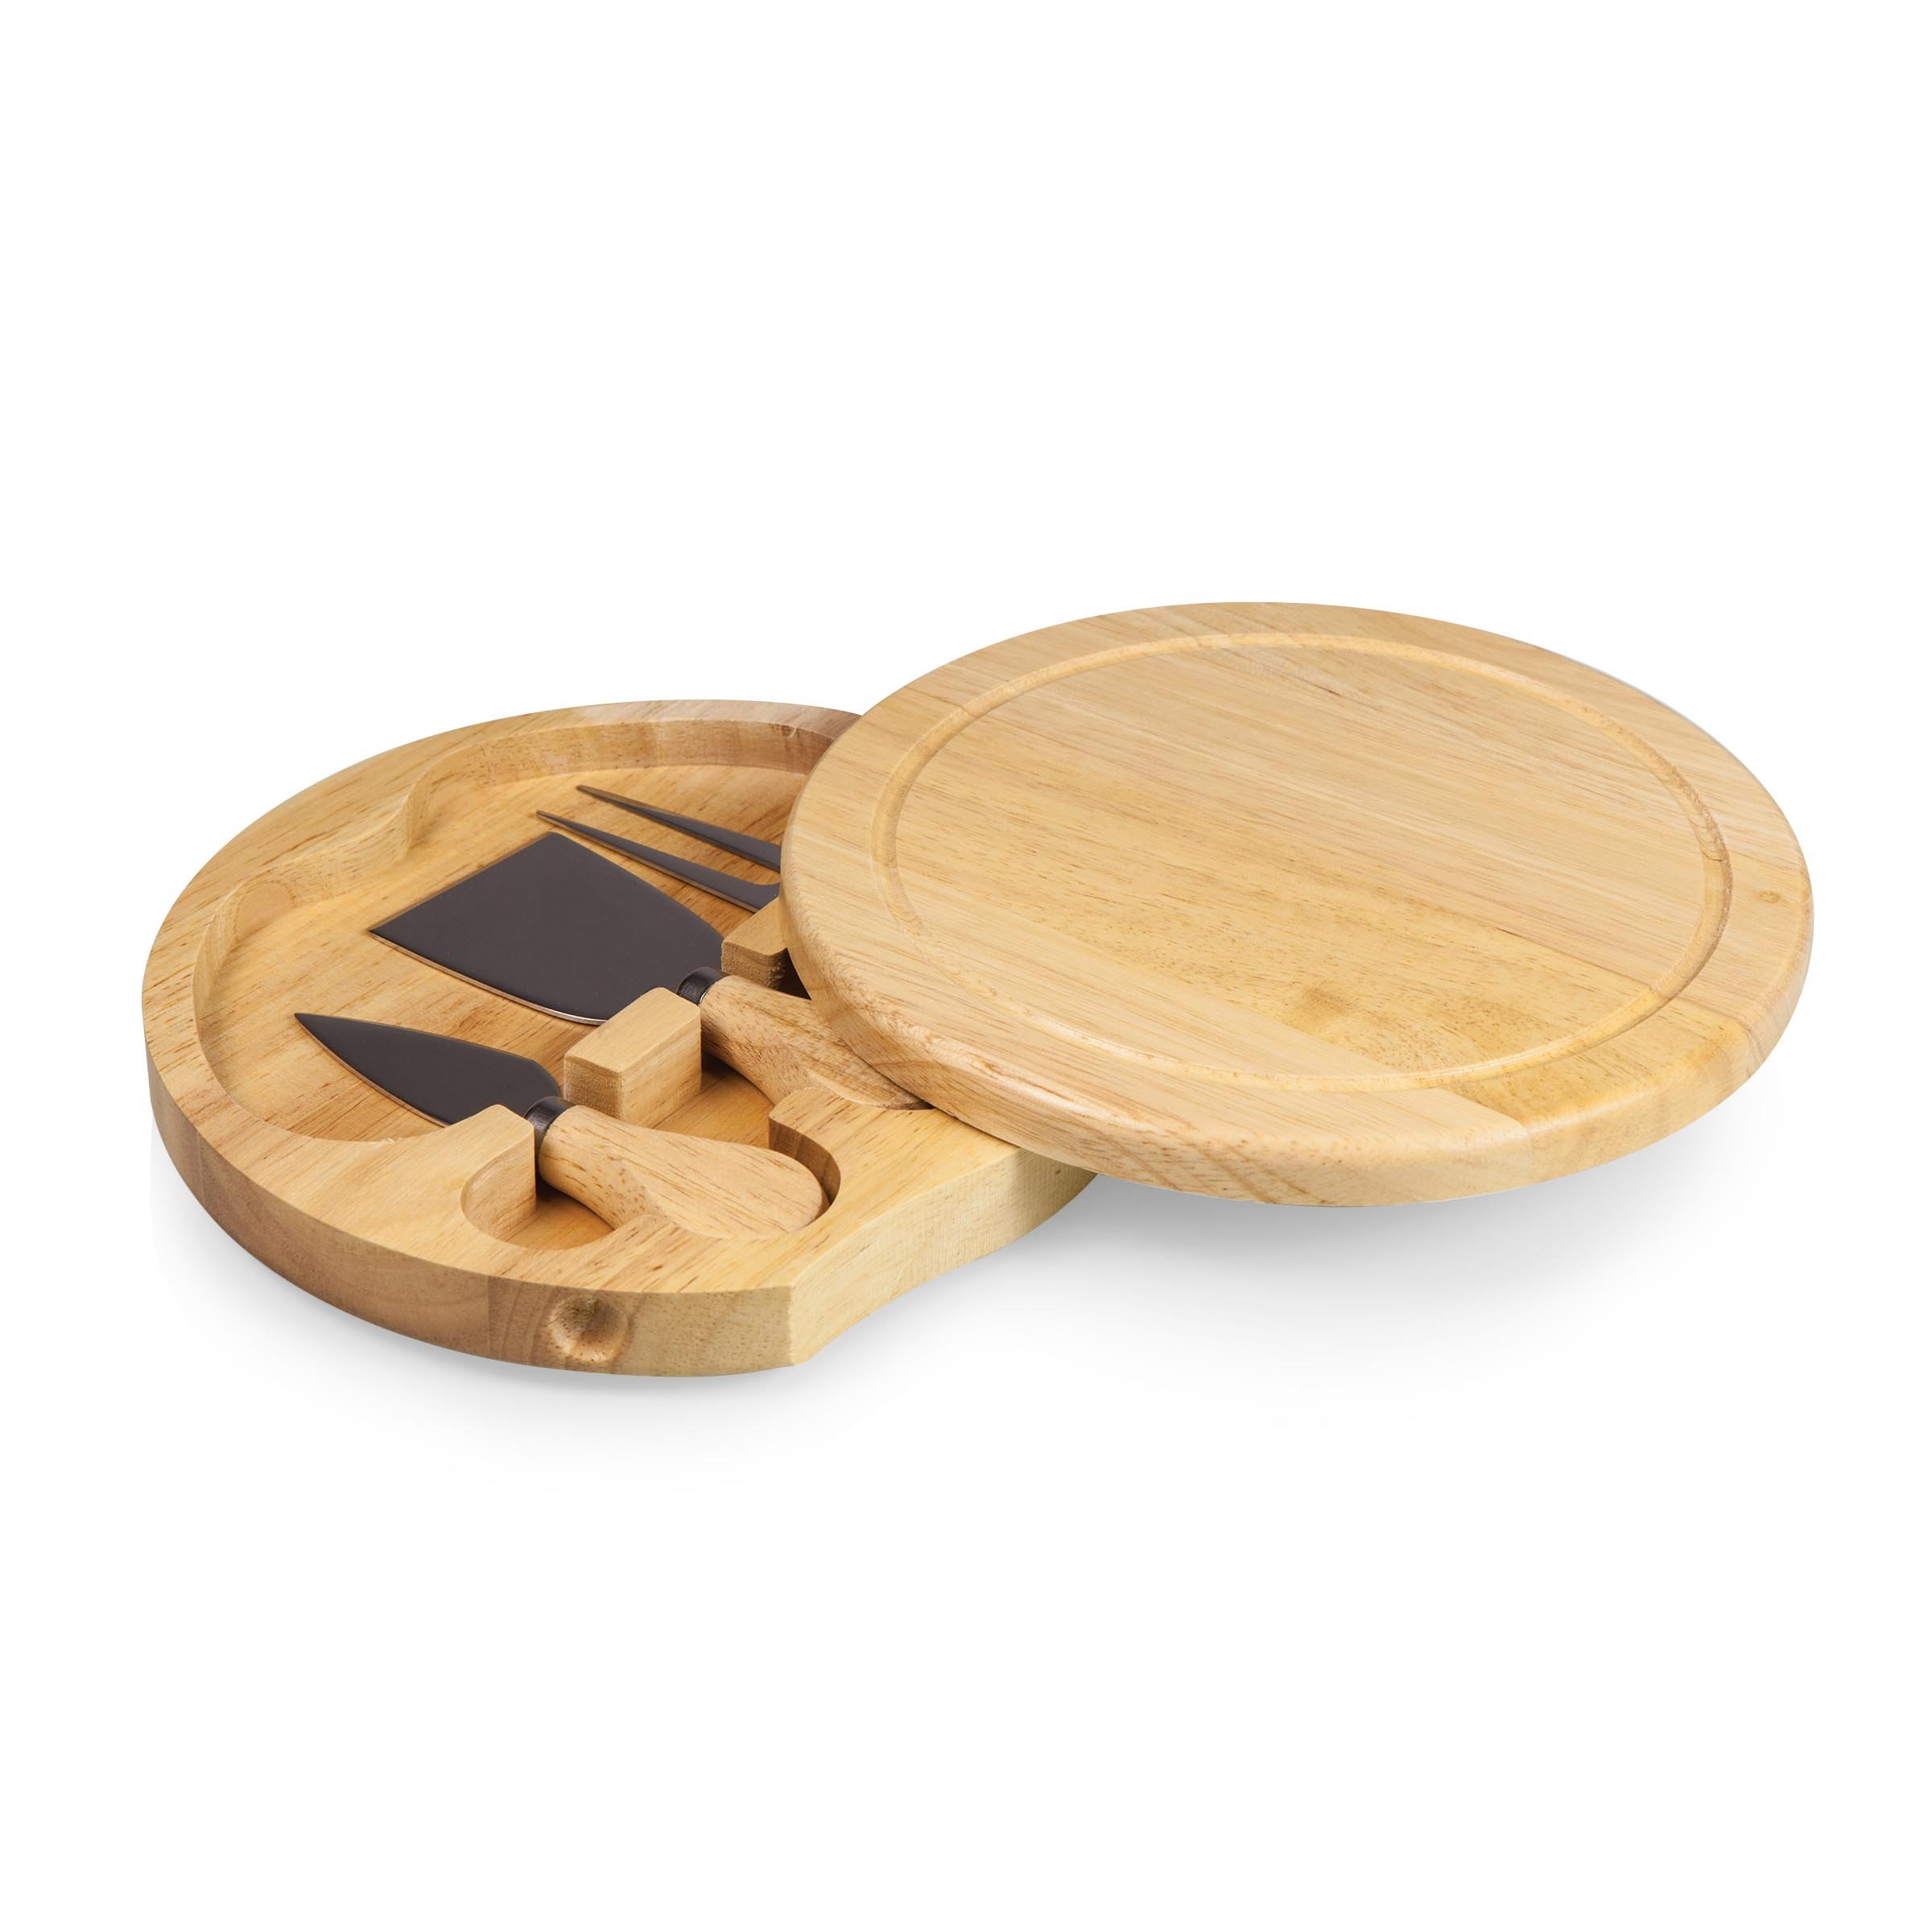 TOSCANA - a Picnic Time Brand Brie 7-1/2-Inch Cheese Board with Cheese Tools by TOSCANA - a Picnic Time brand